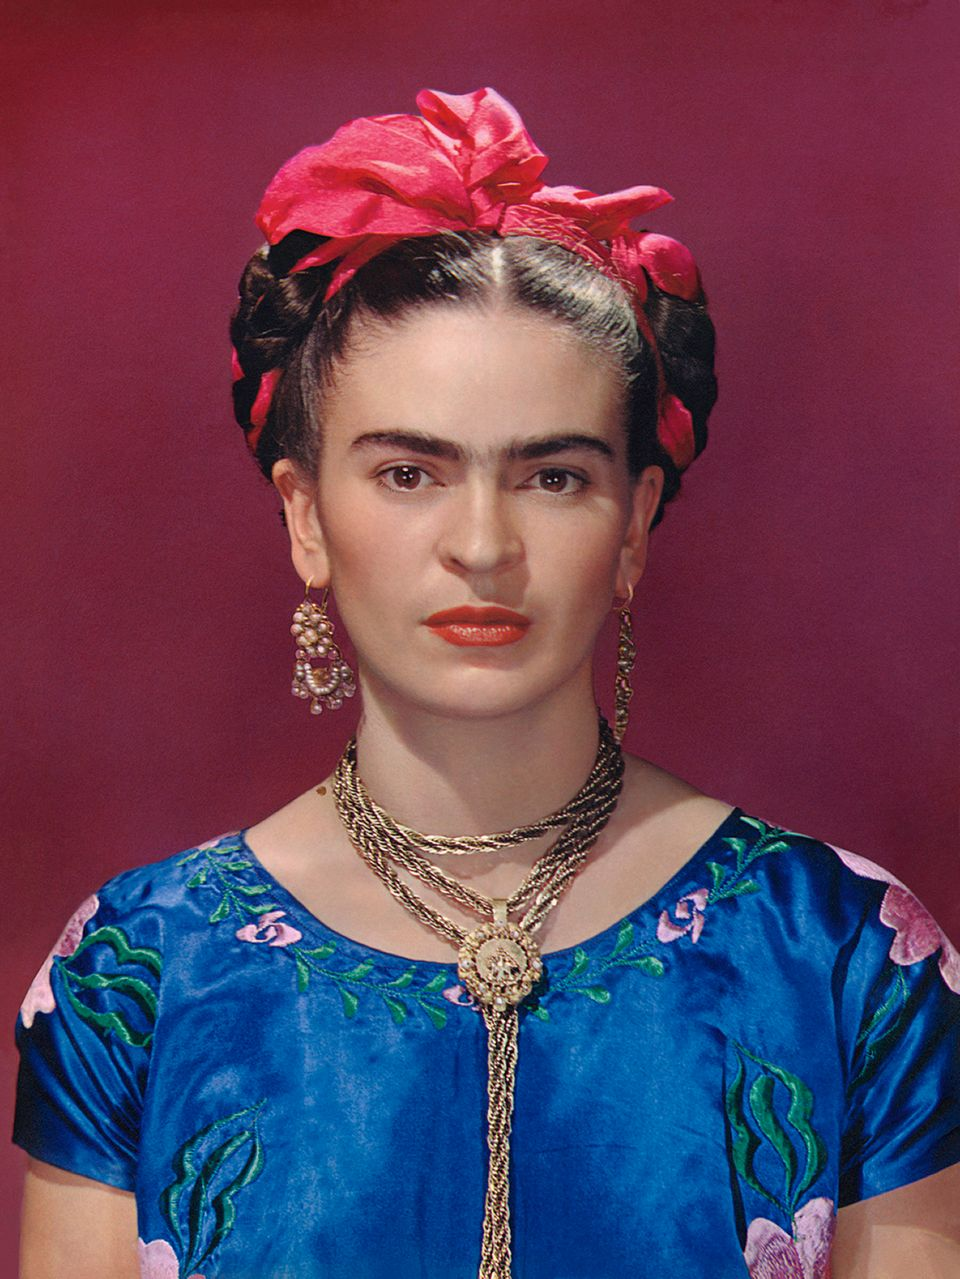 Frida Kahlo's Eyebrow Pencil And Prosthetic Leg Go On Display In London's V&A